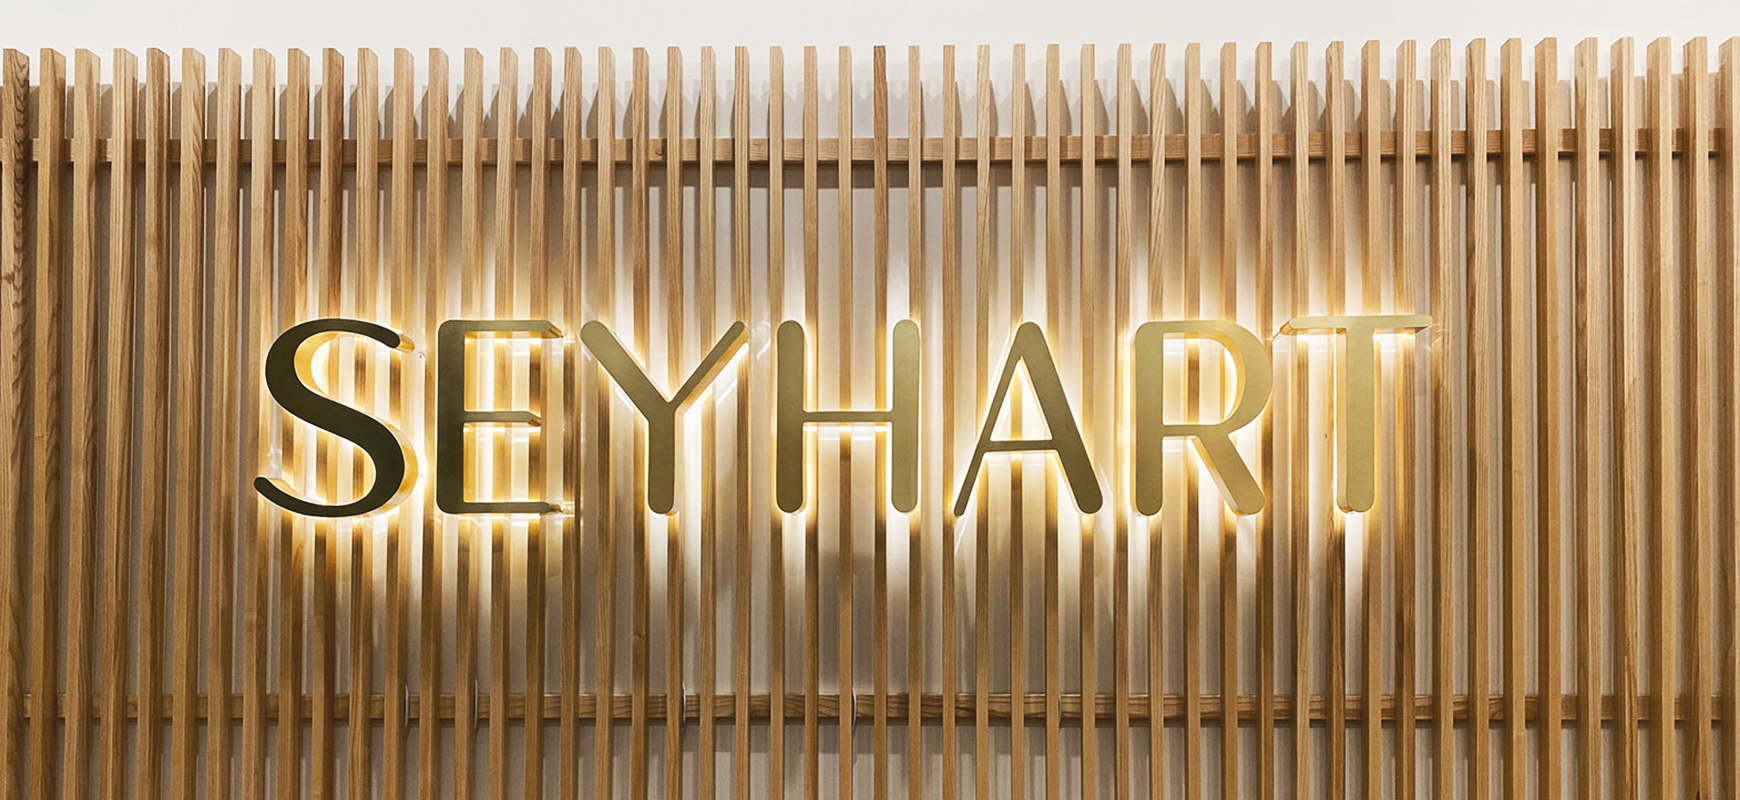 Seyhart channel letters in gold color displaying the company name made of aluminum and acrylic for interior branding